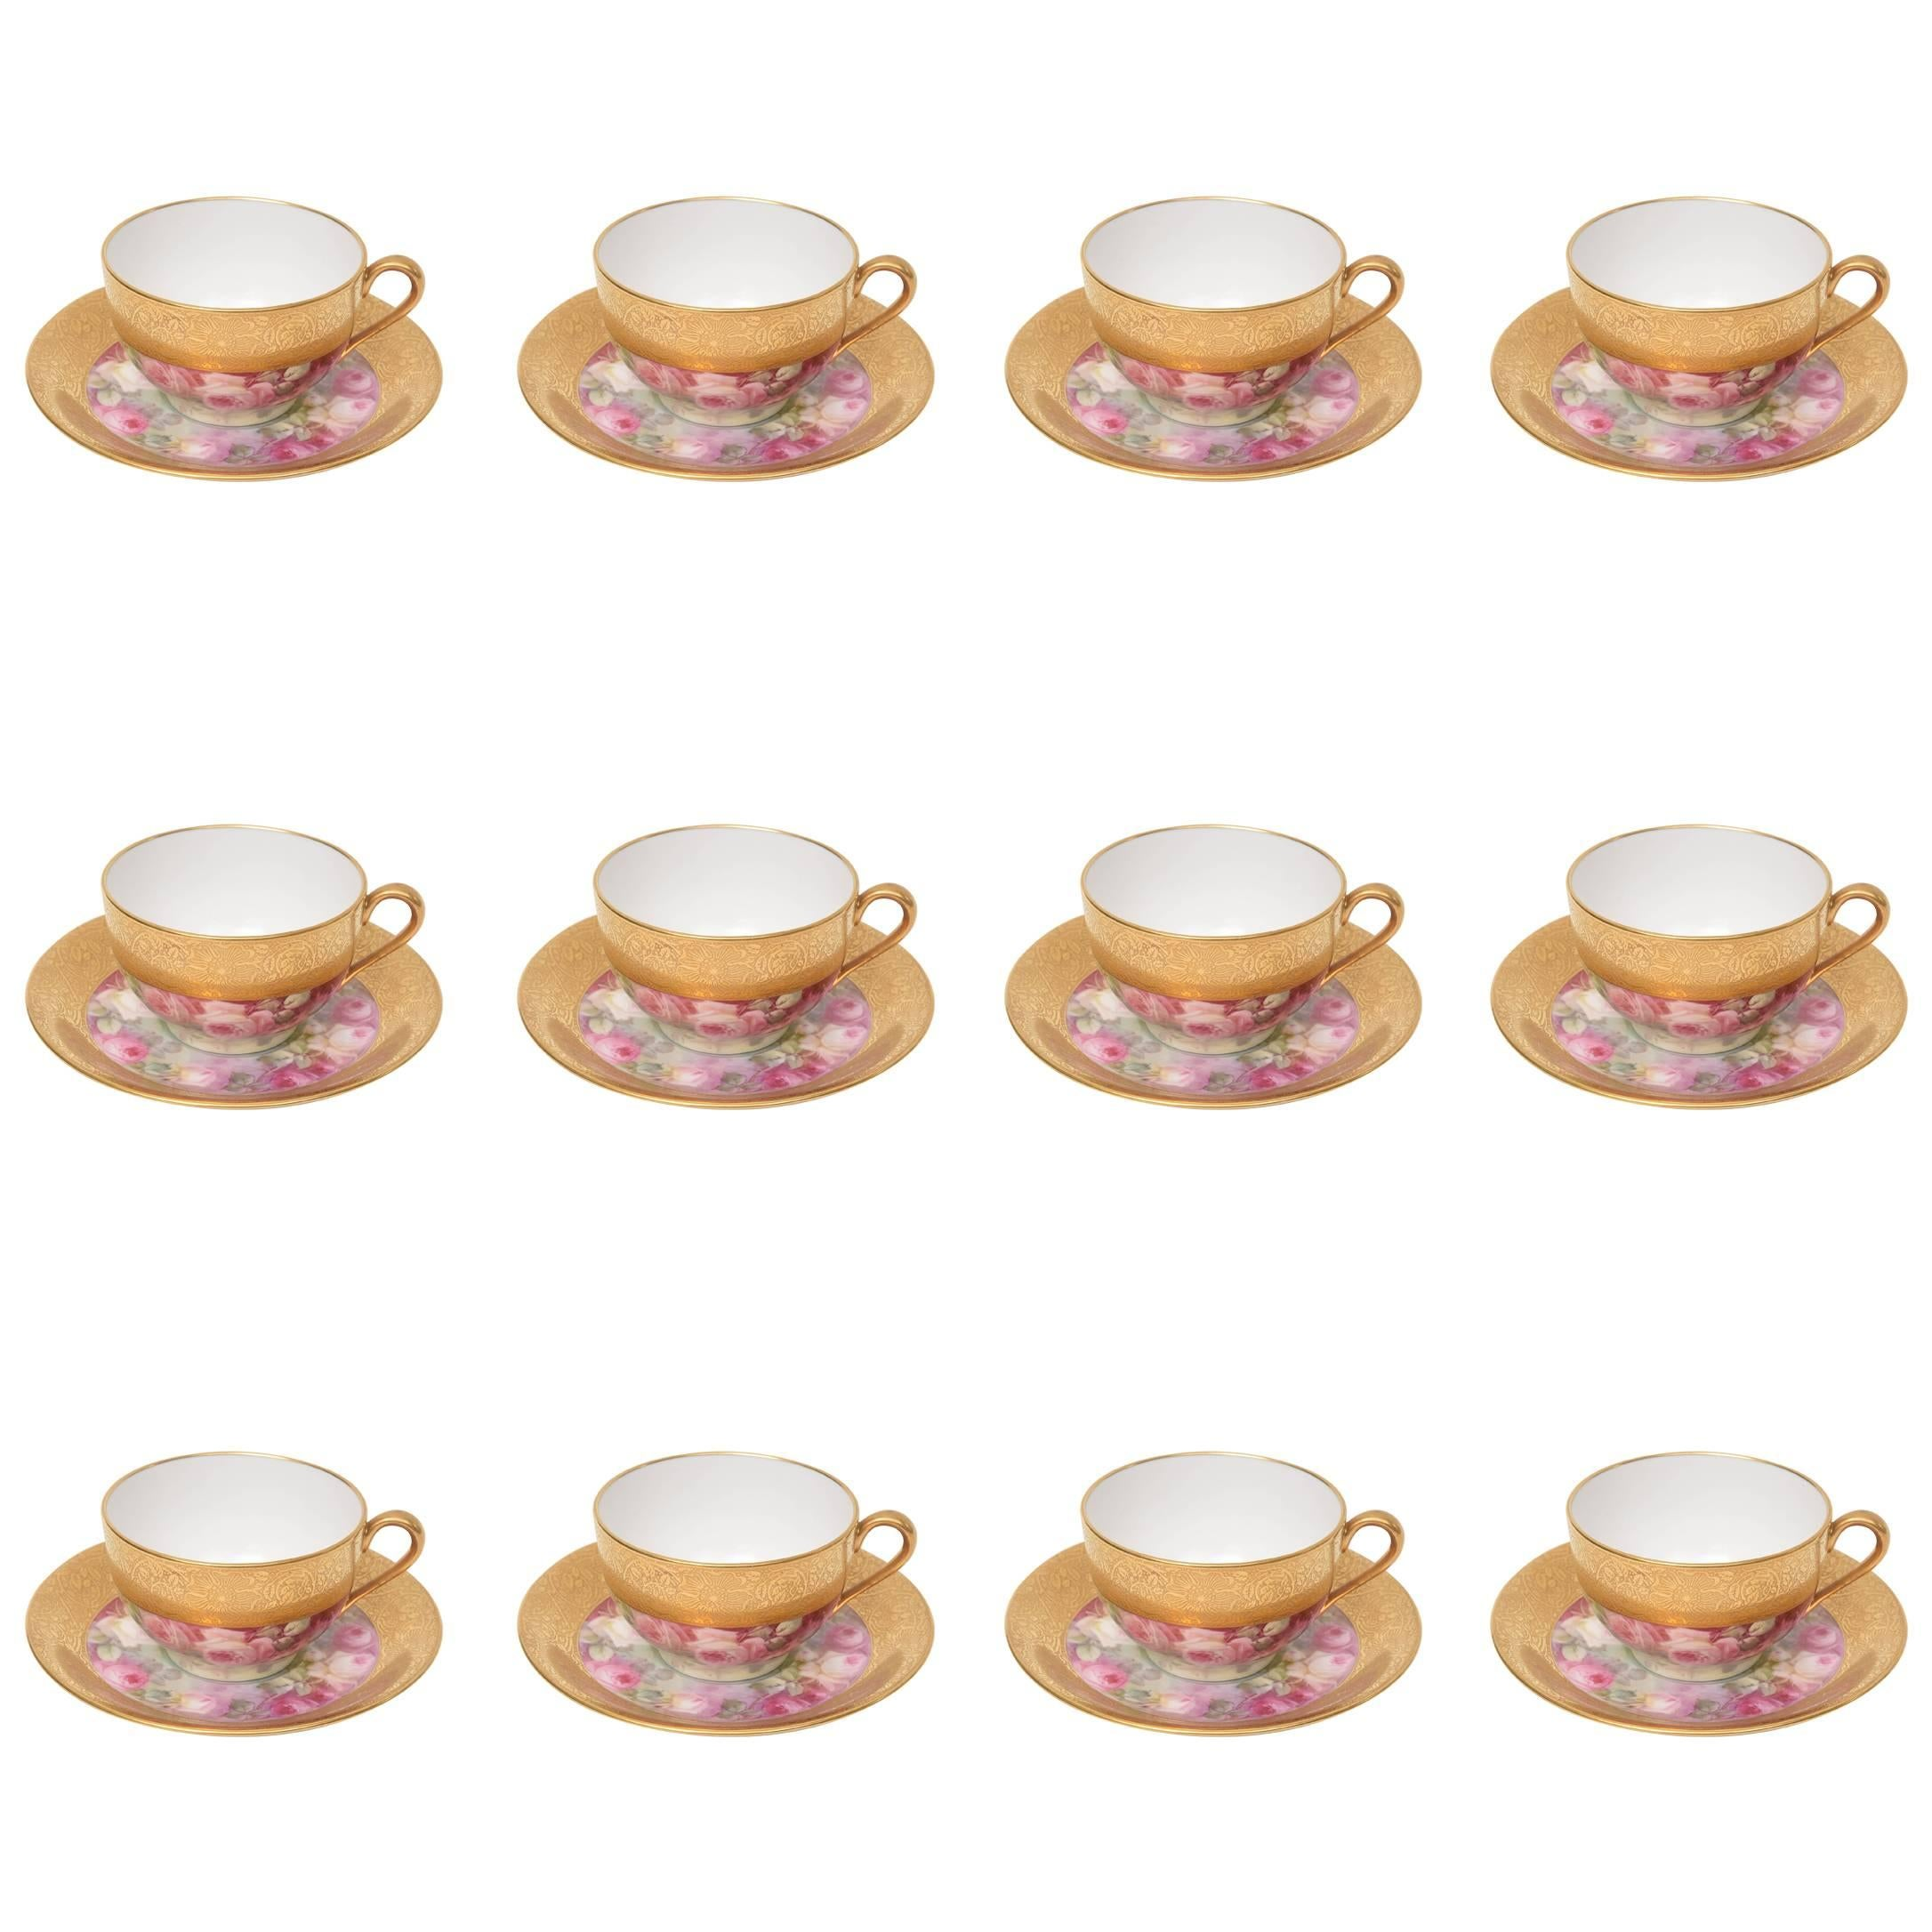 Set of 12 Hand-Painted and Gilt Encrusted Cup and Saucers, 24 Pieces Total